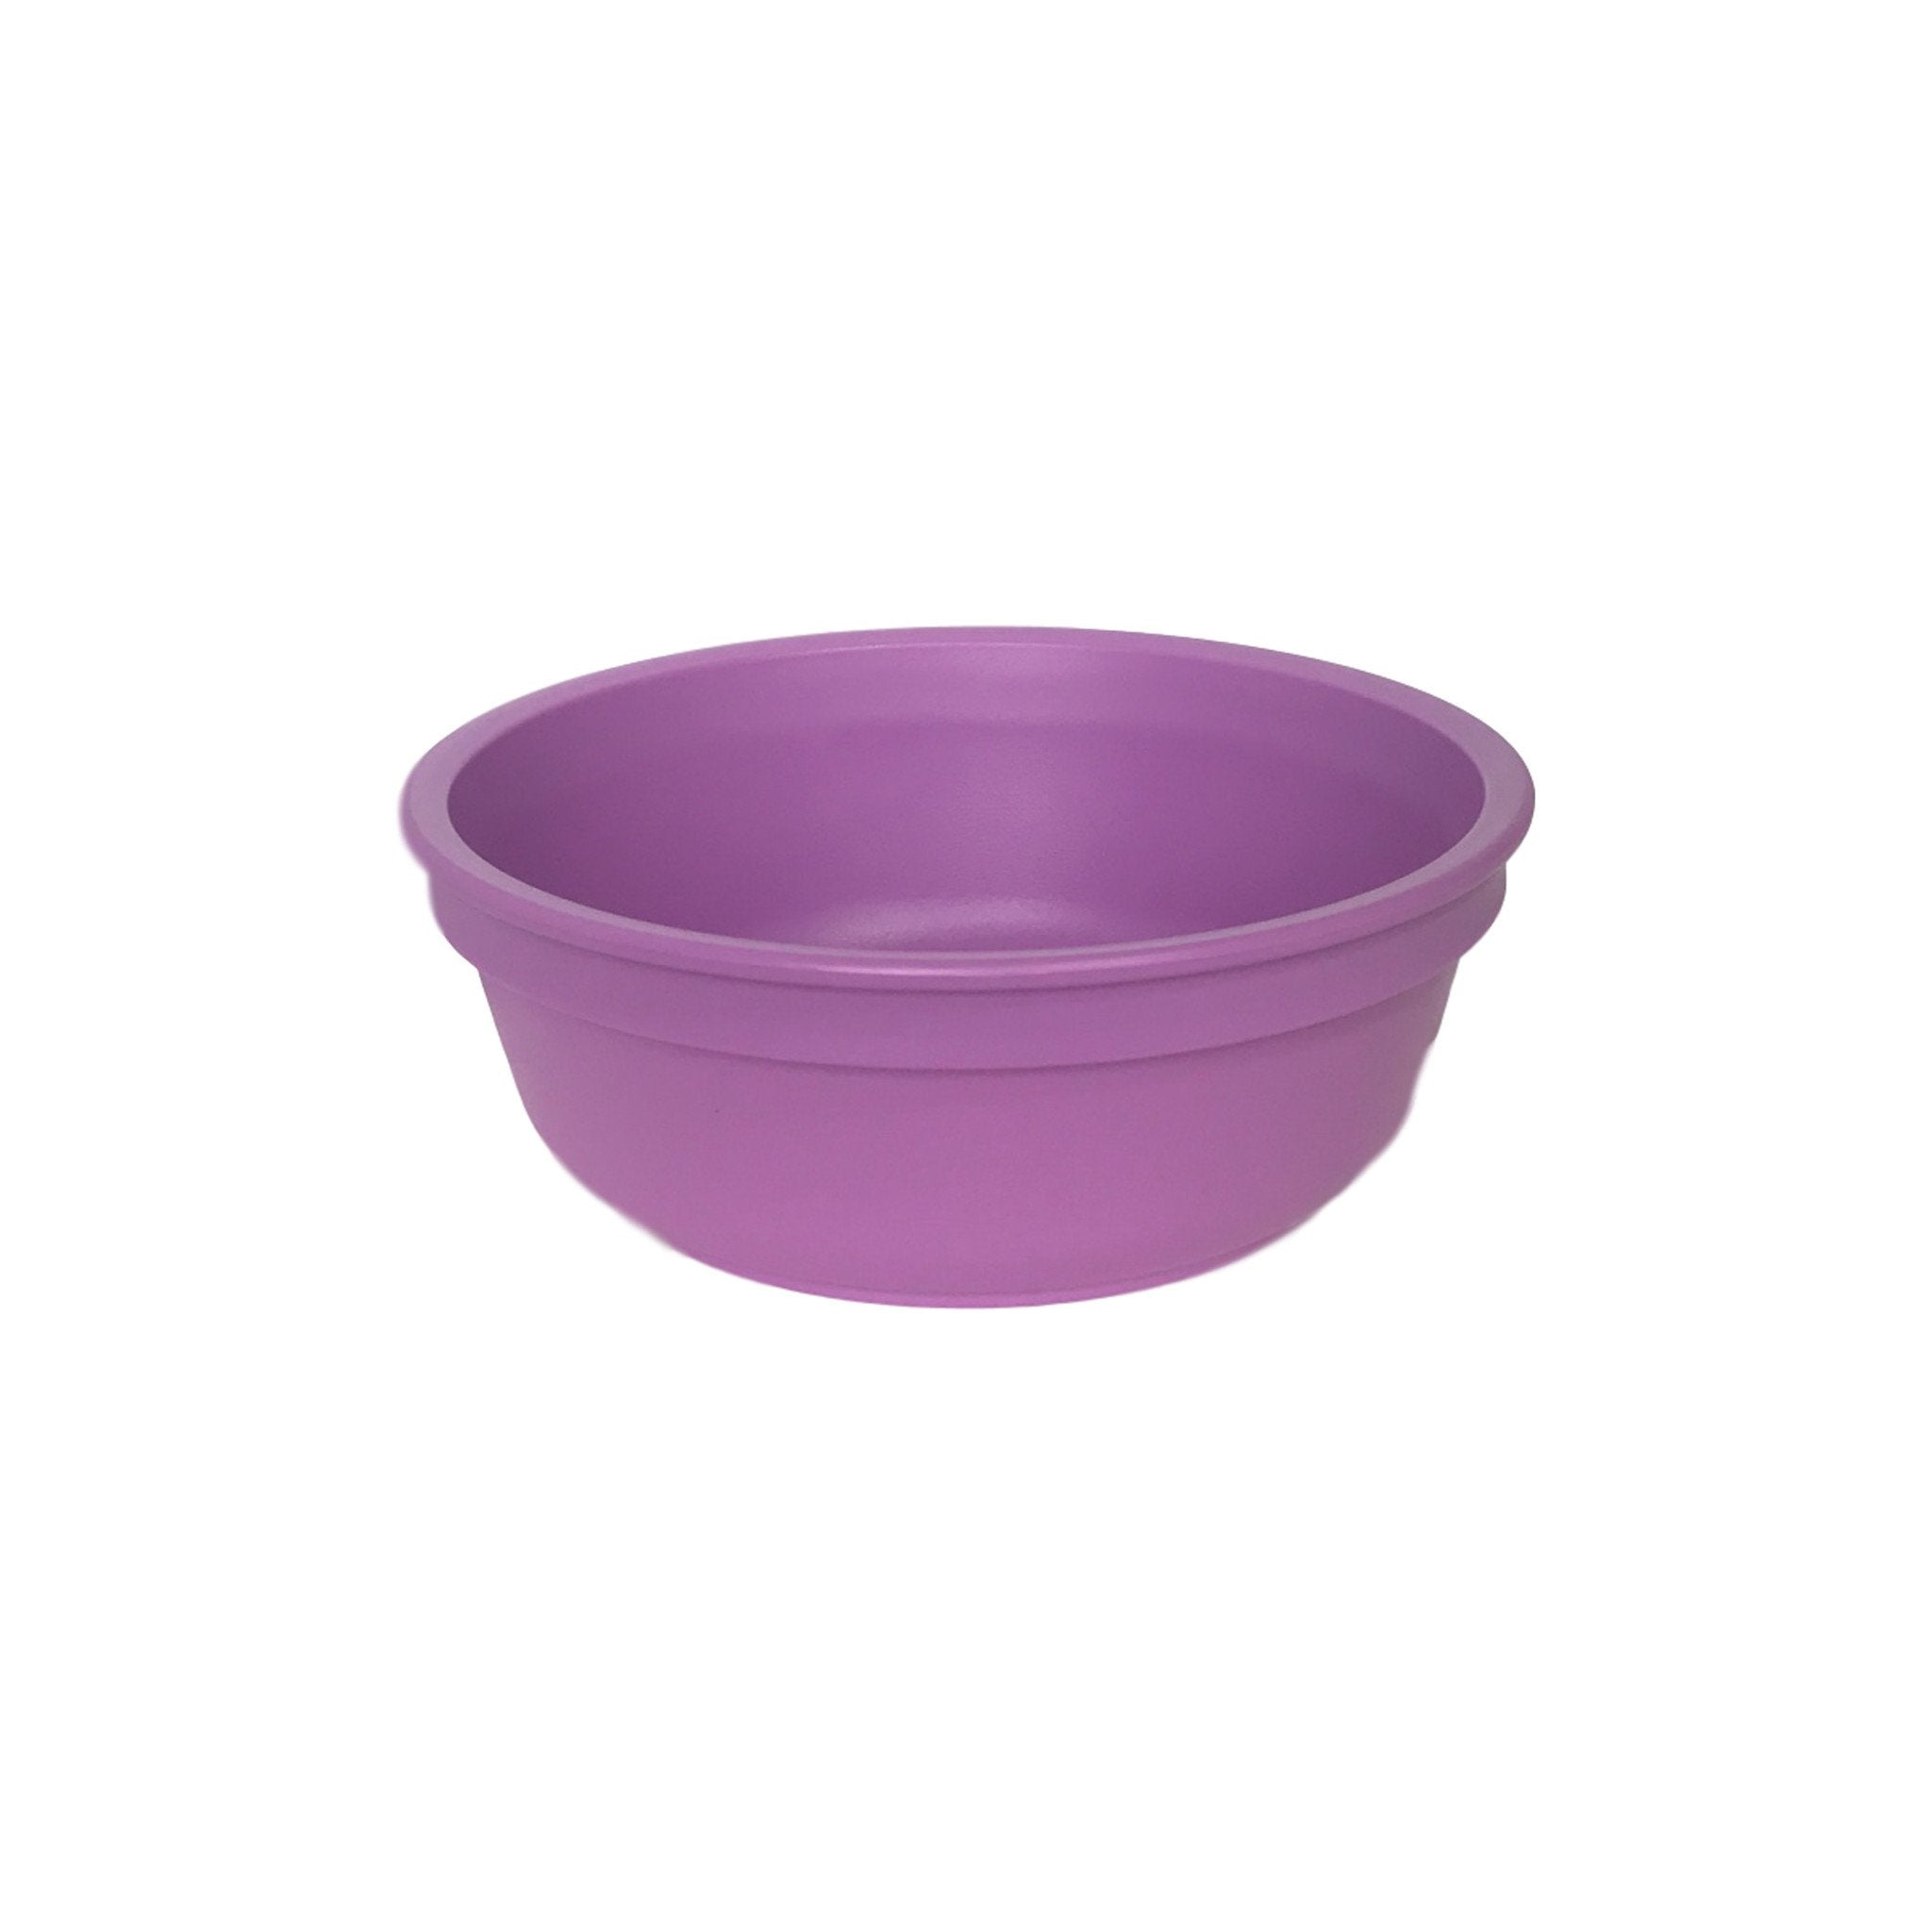 Replay Bowl Replay Lifestyle Purple at Little Earth Nest Eco Shop